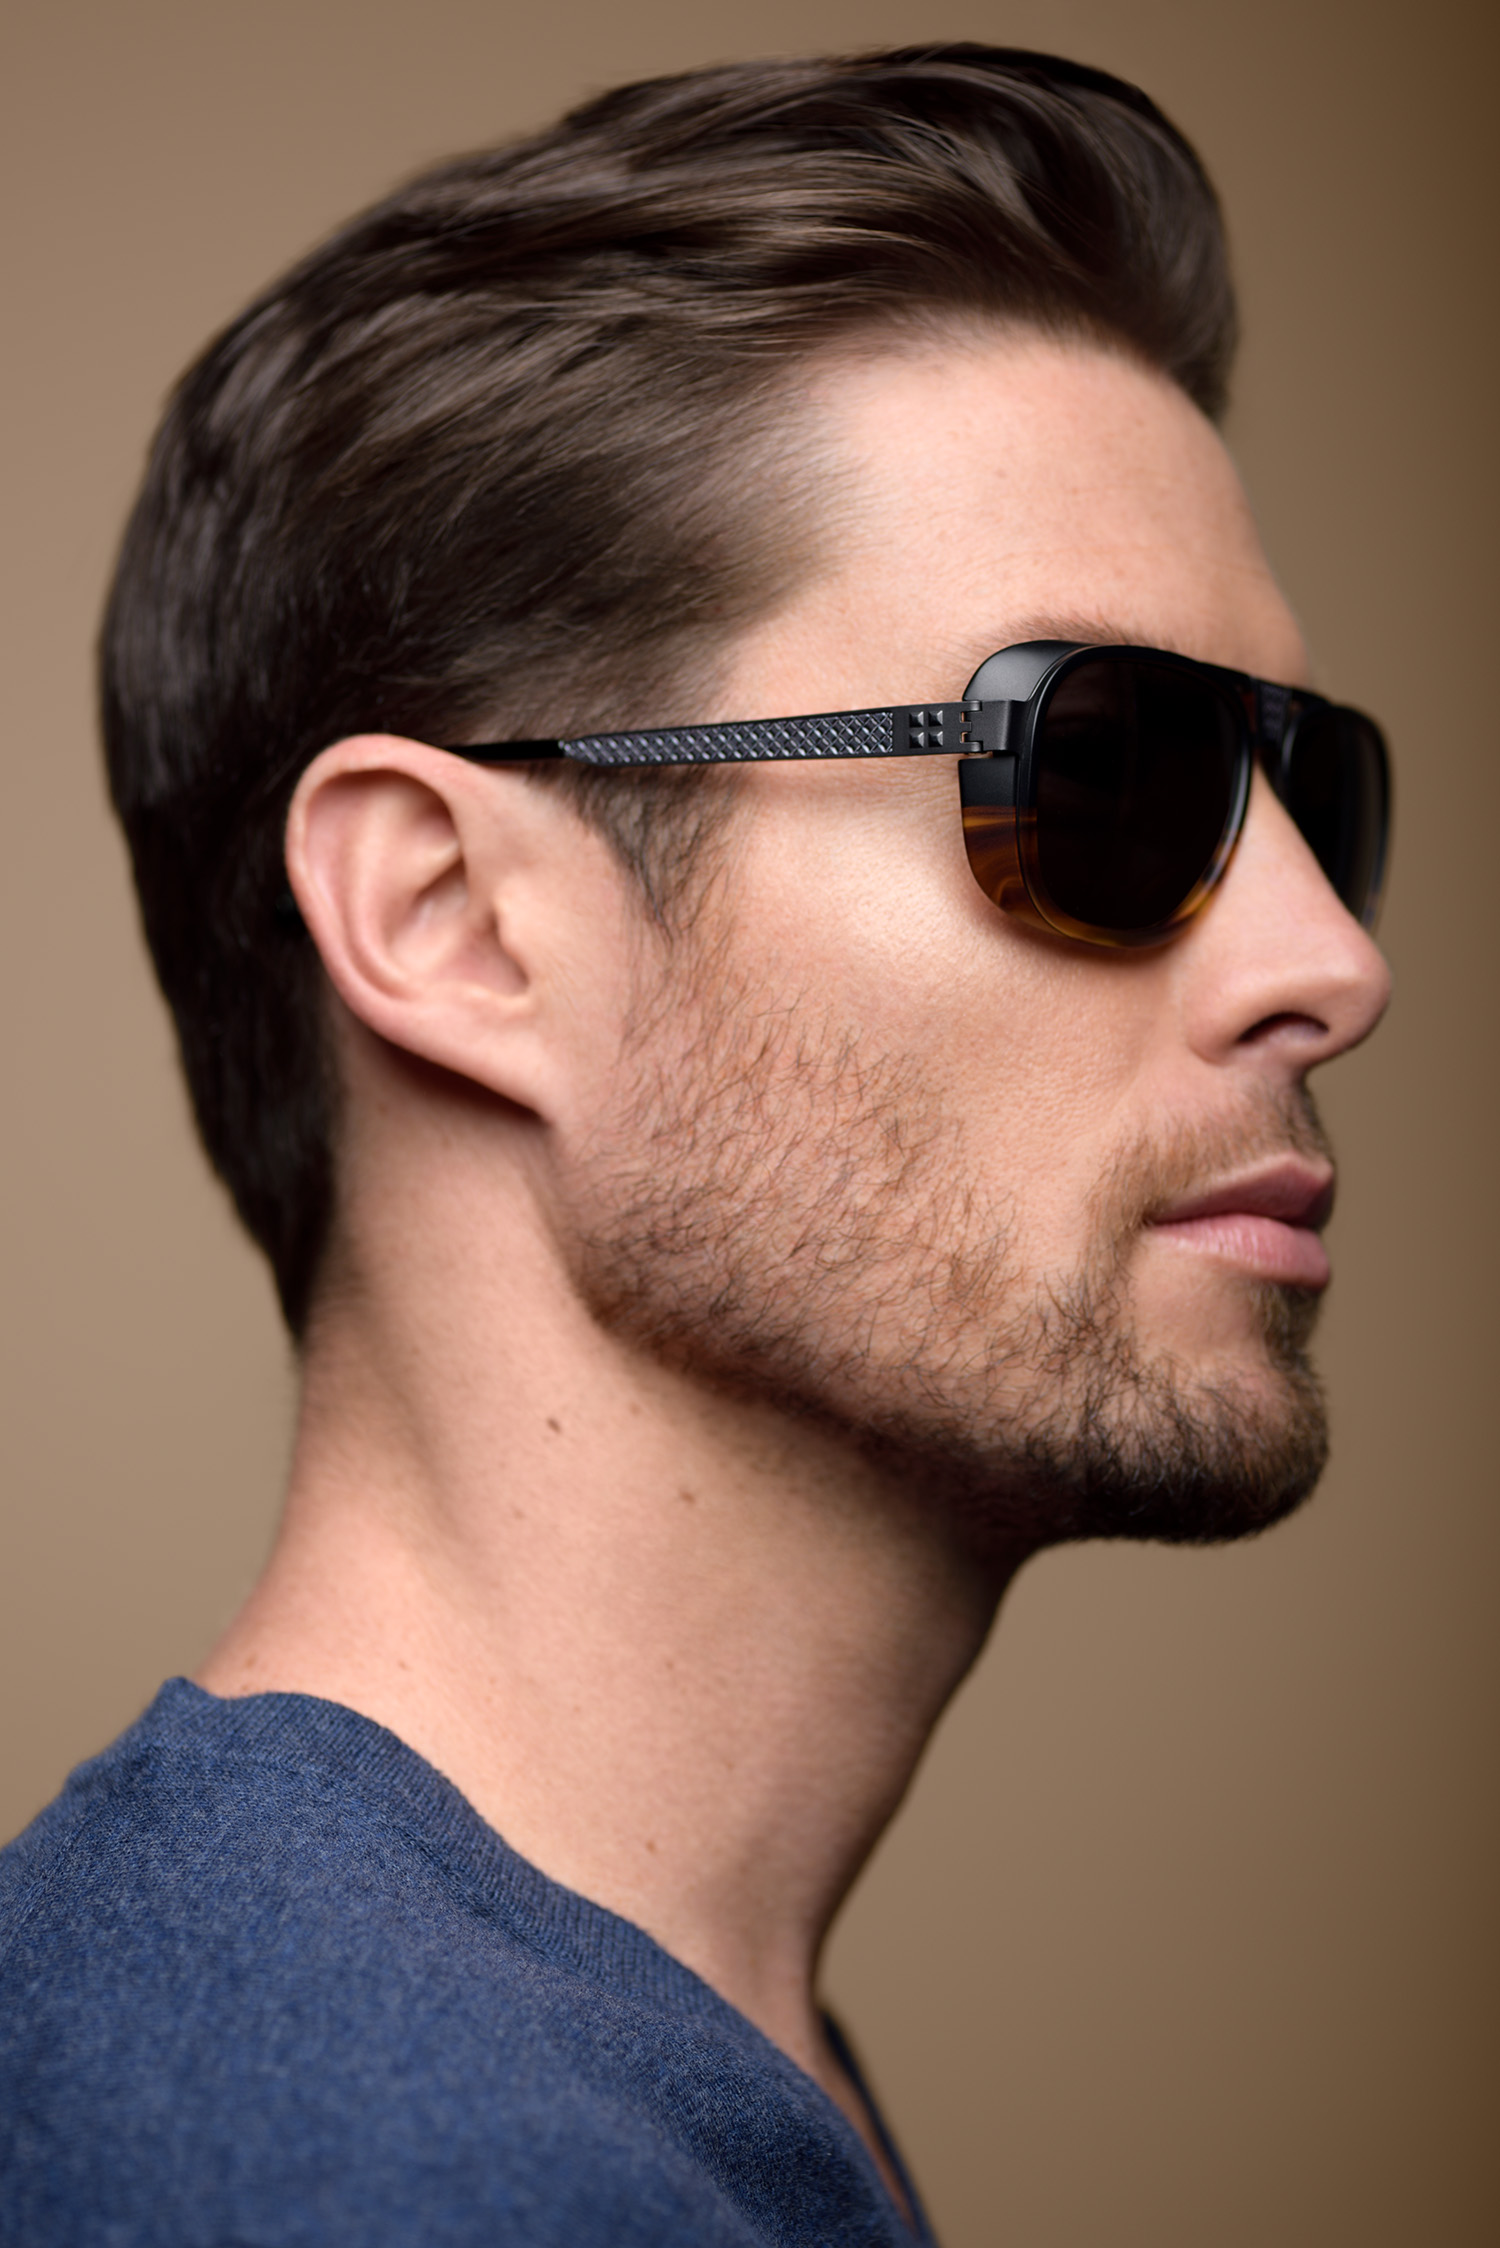 chadd-smith-sunglasses-copyright-melis-dainon.jpg